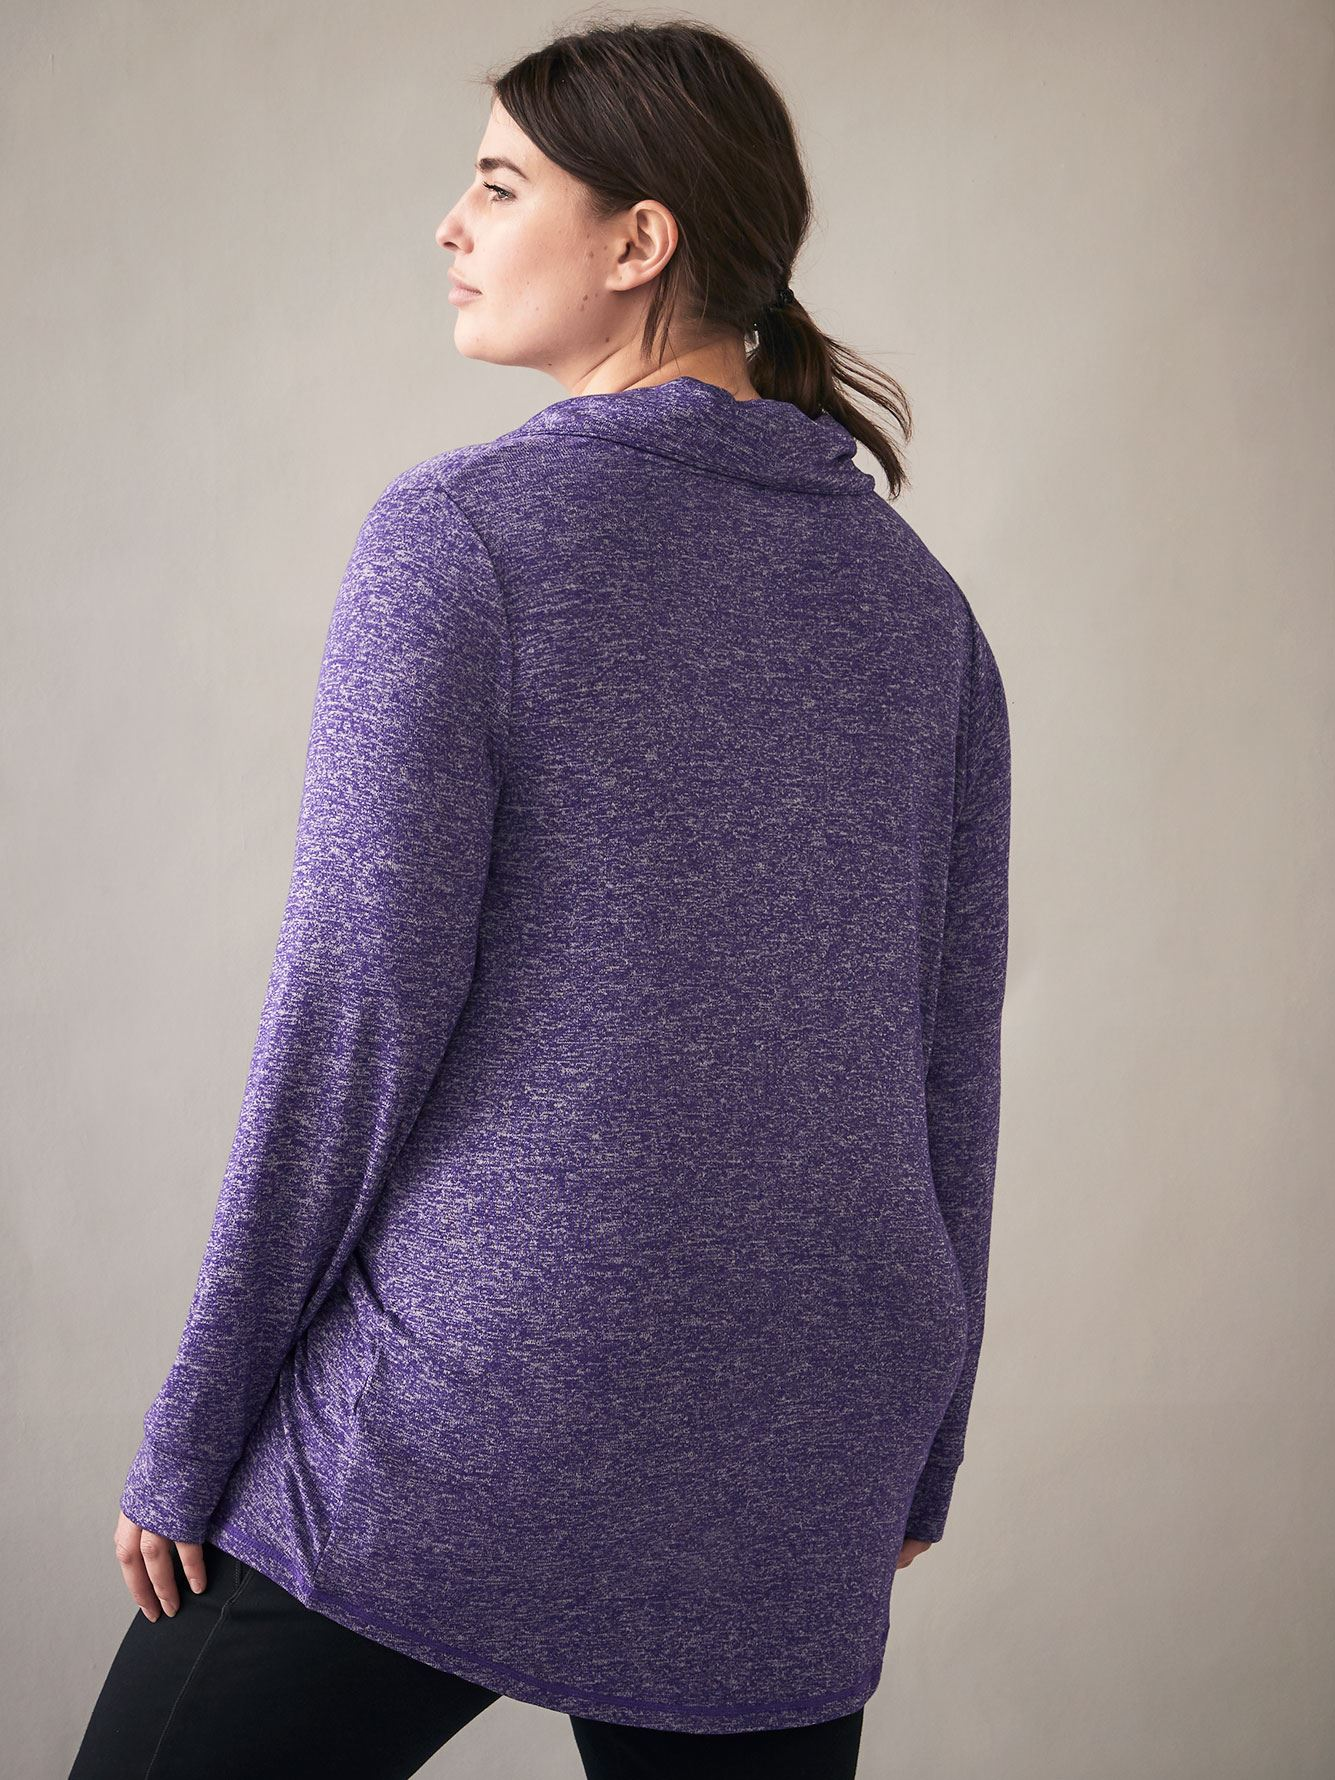 Long-Sleeve French Terry Pullover - ActiveZone